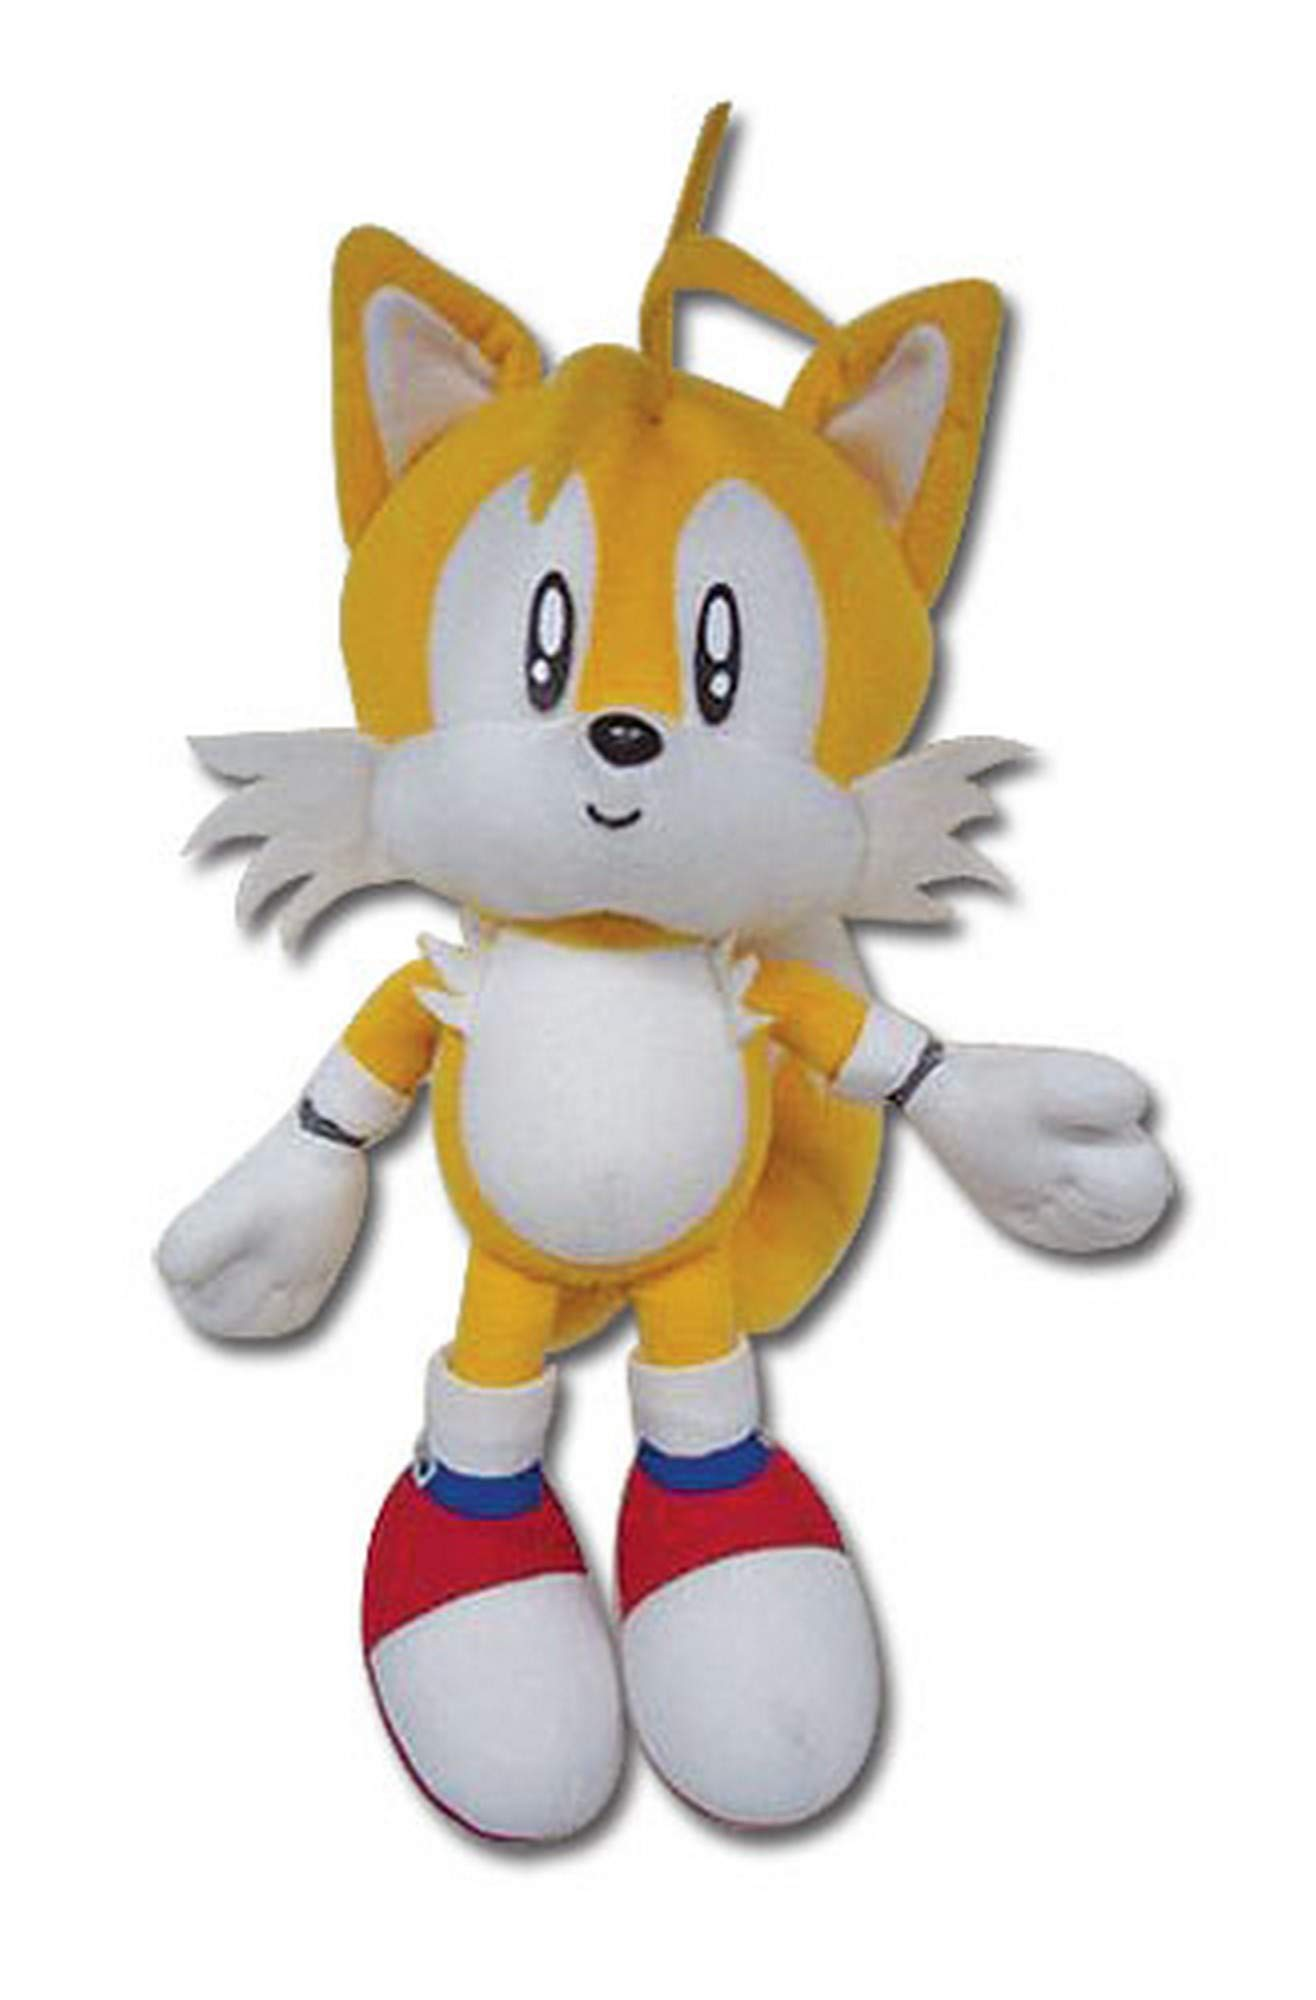 GE Animation Sonic The Hedgehog - Tails Plush 7'', Multicolor (GE-7089)